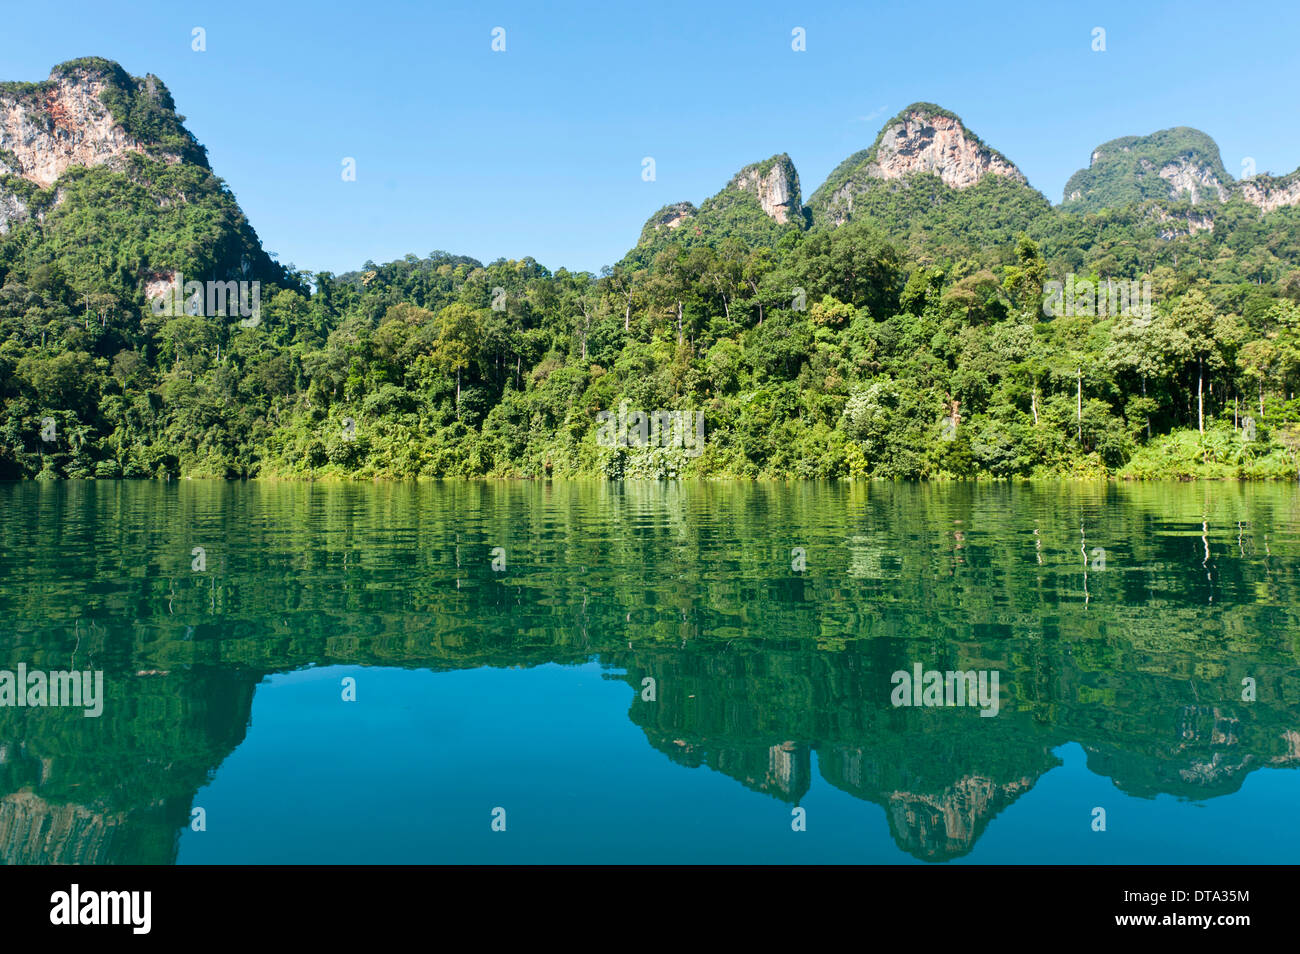 Forested karst limestone mountains with jungle vegetation reflected in the water, Rachabrapha reservoir, Chiao Lan Stock Photo